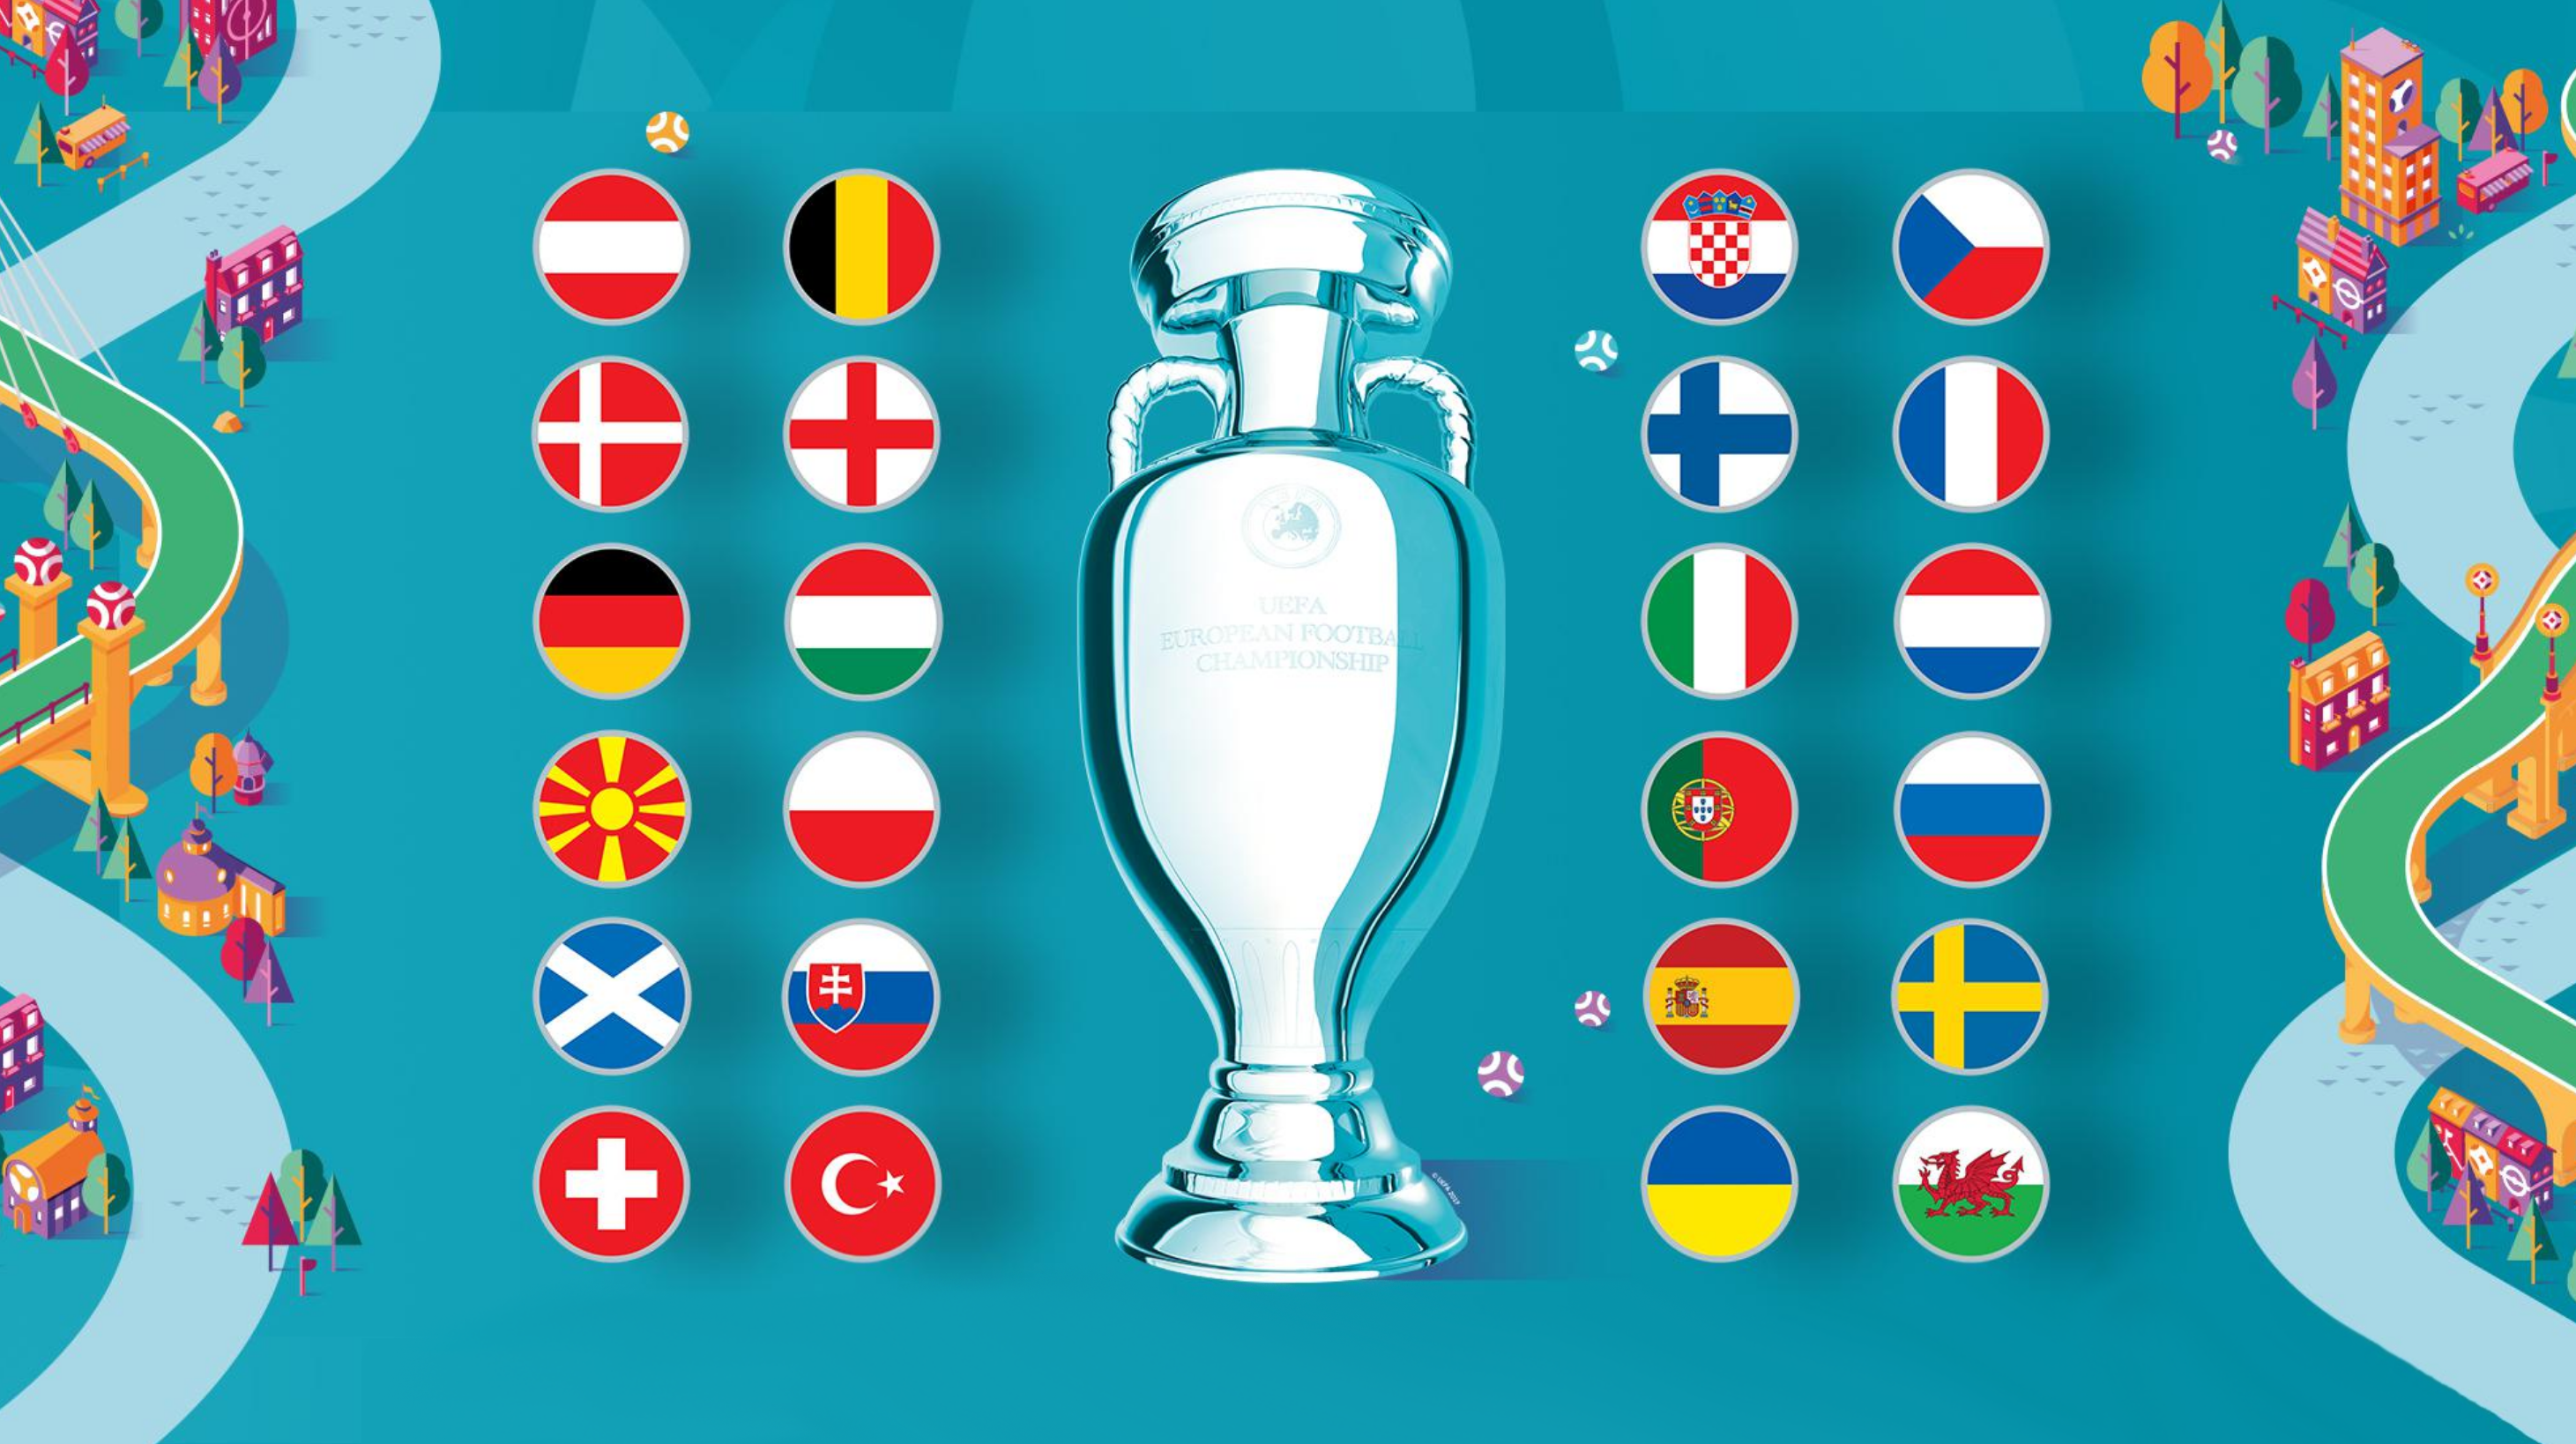 UEFA euro 2020 cup with the flags of participating countries in the competition